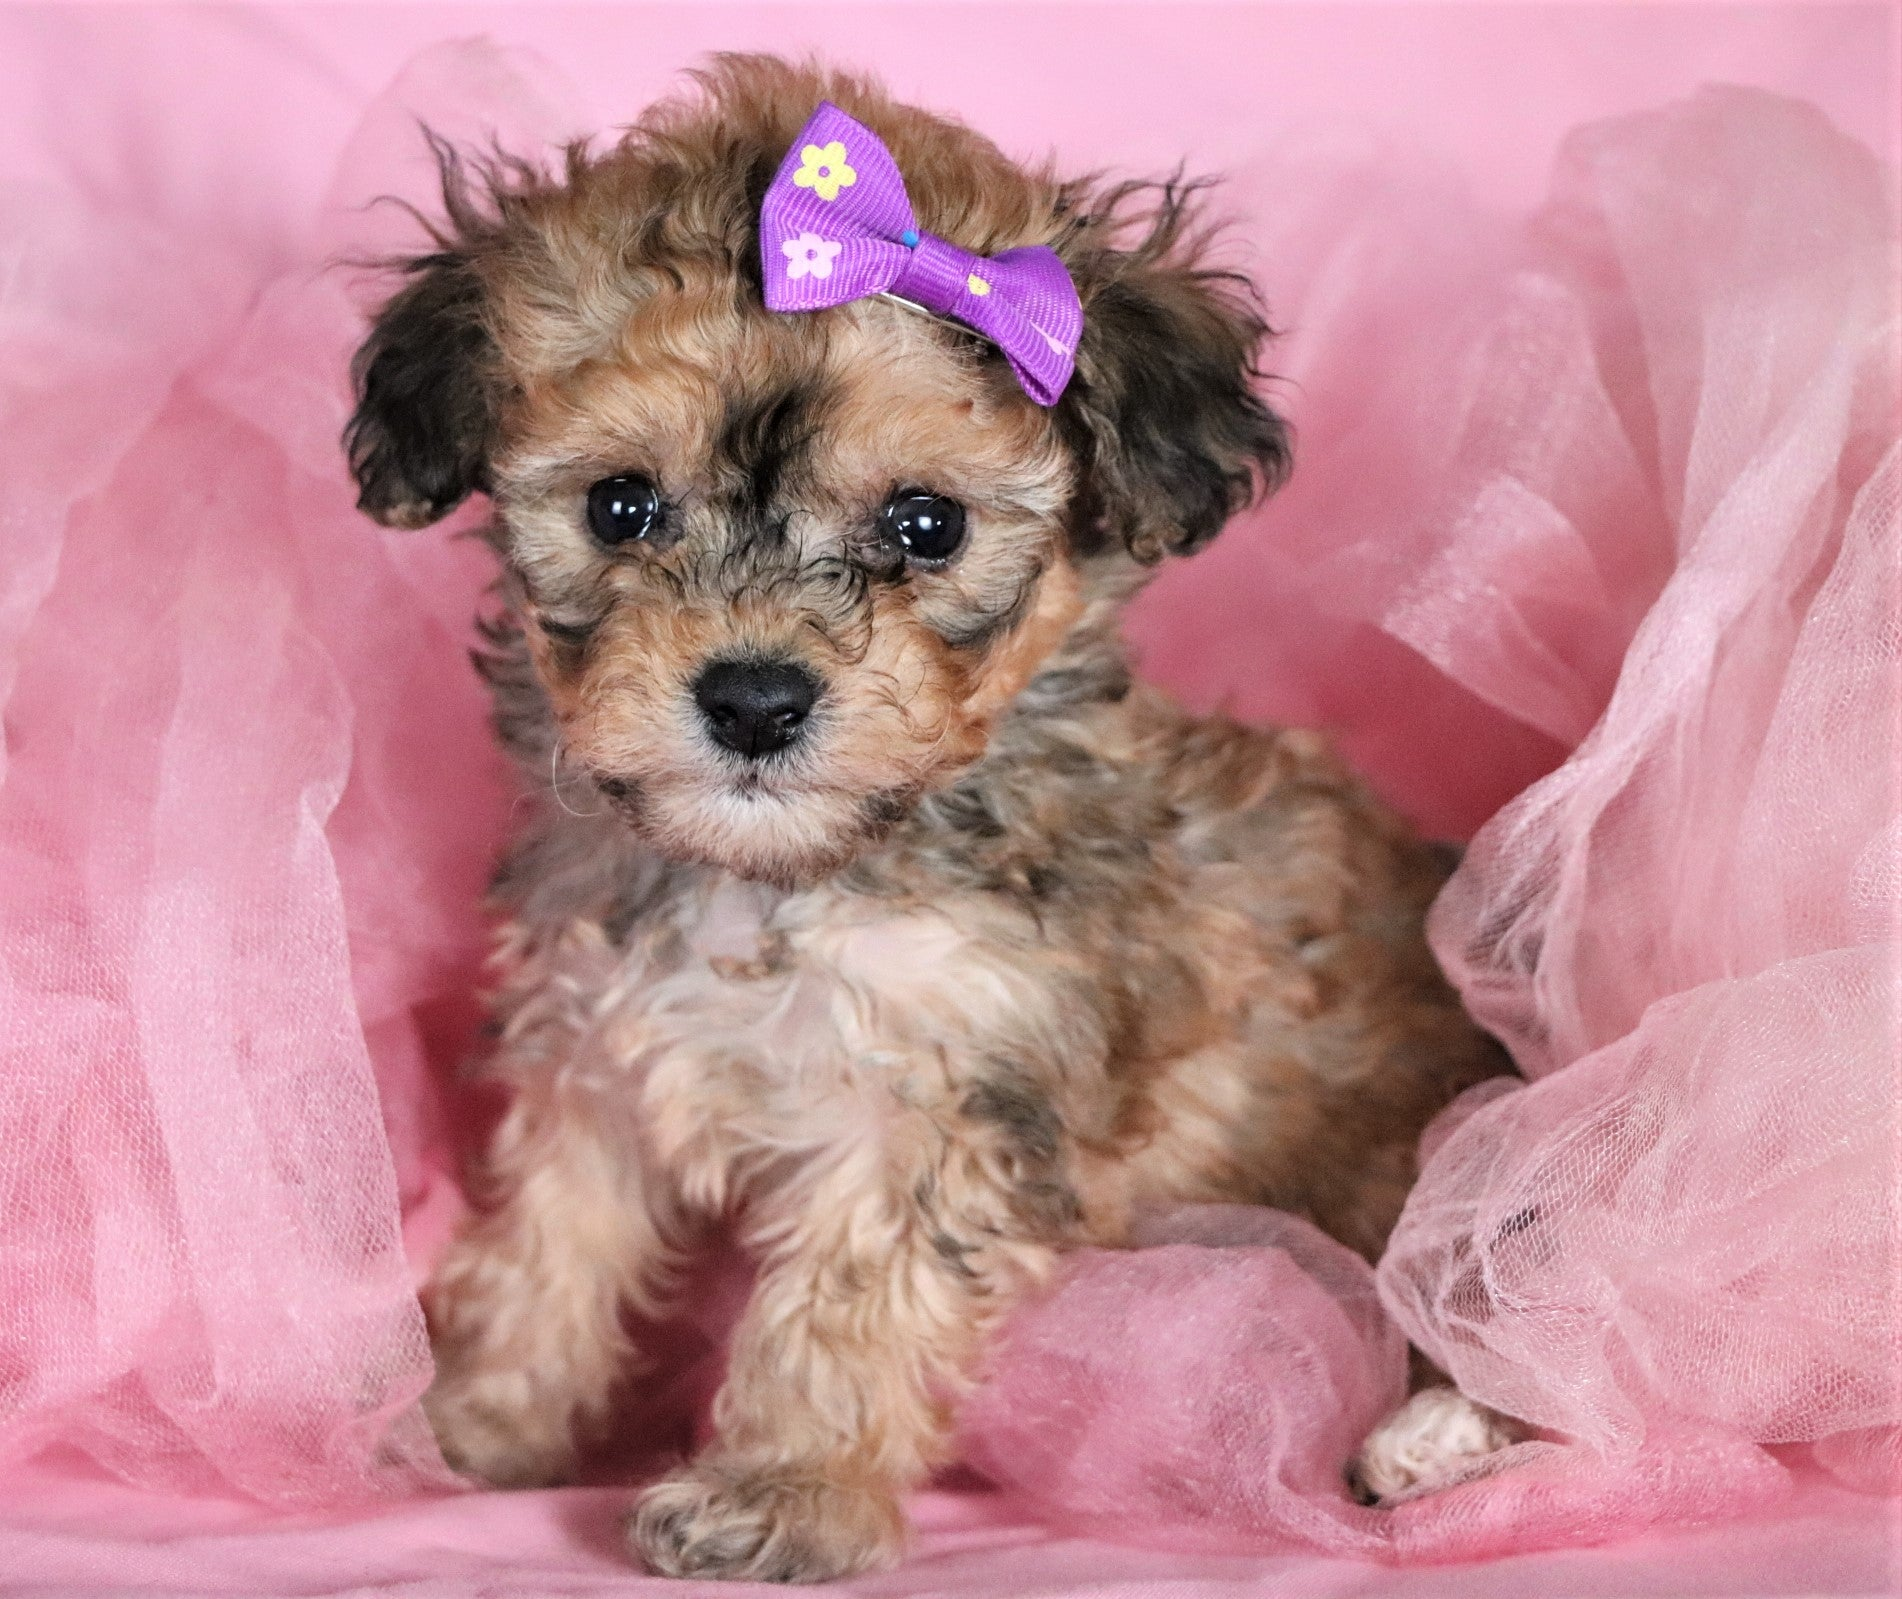 Lena Female Teacup F1B Bichpoo Puppy